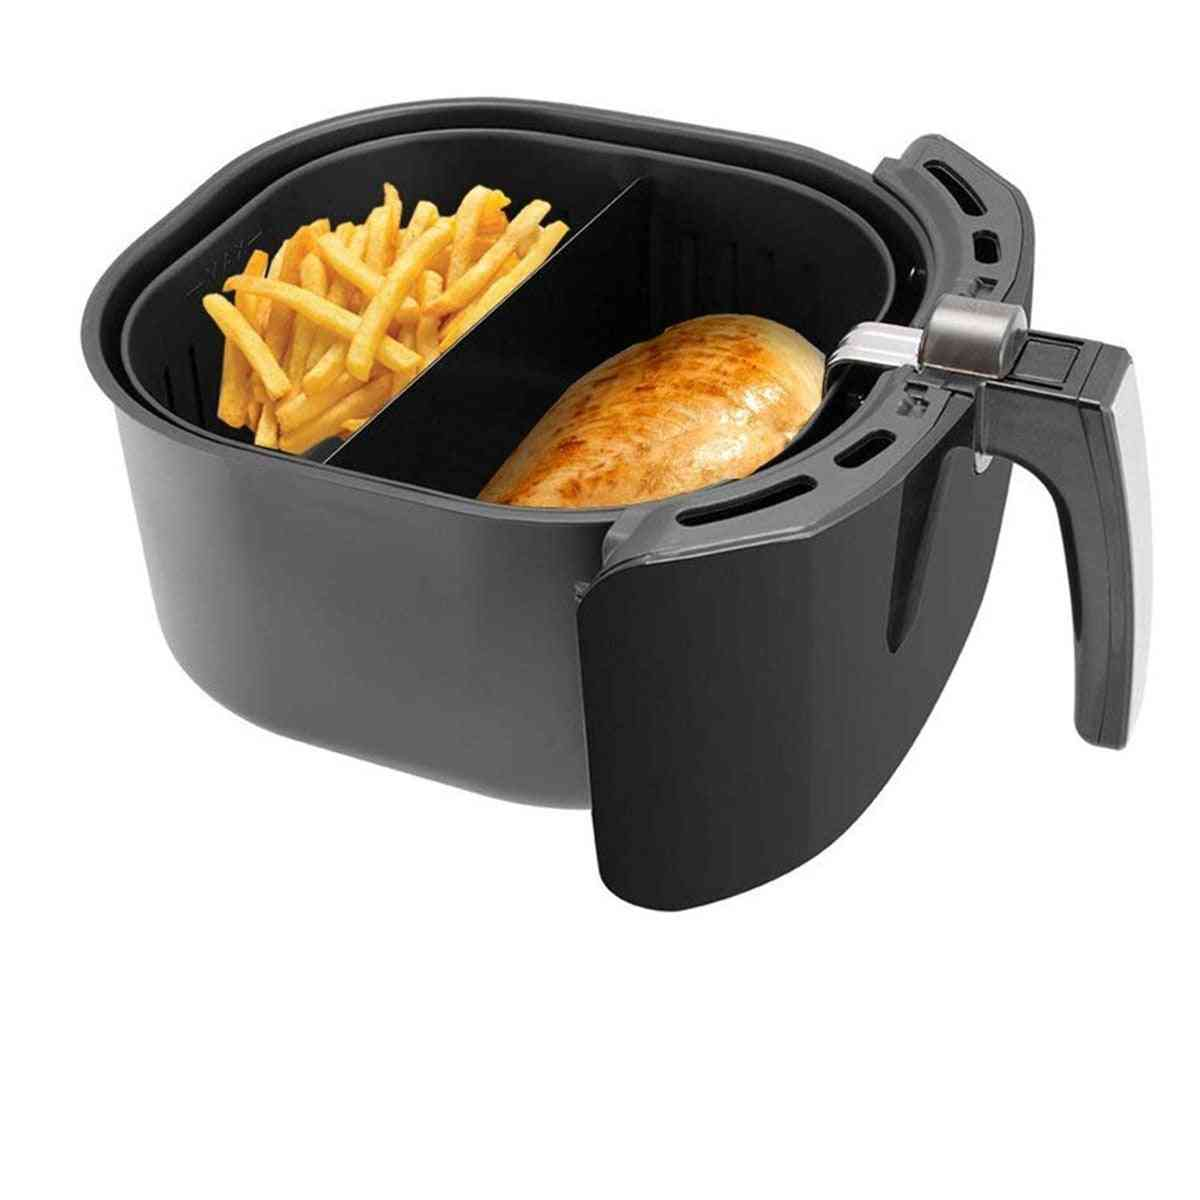 Air Fryer Cooking Divider, Compatible Baskets Keeps Food Separated